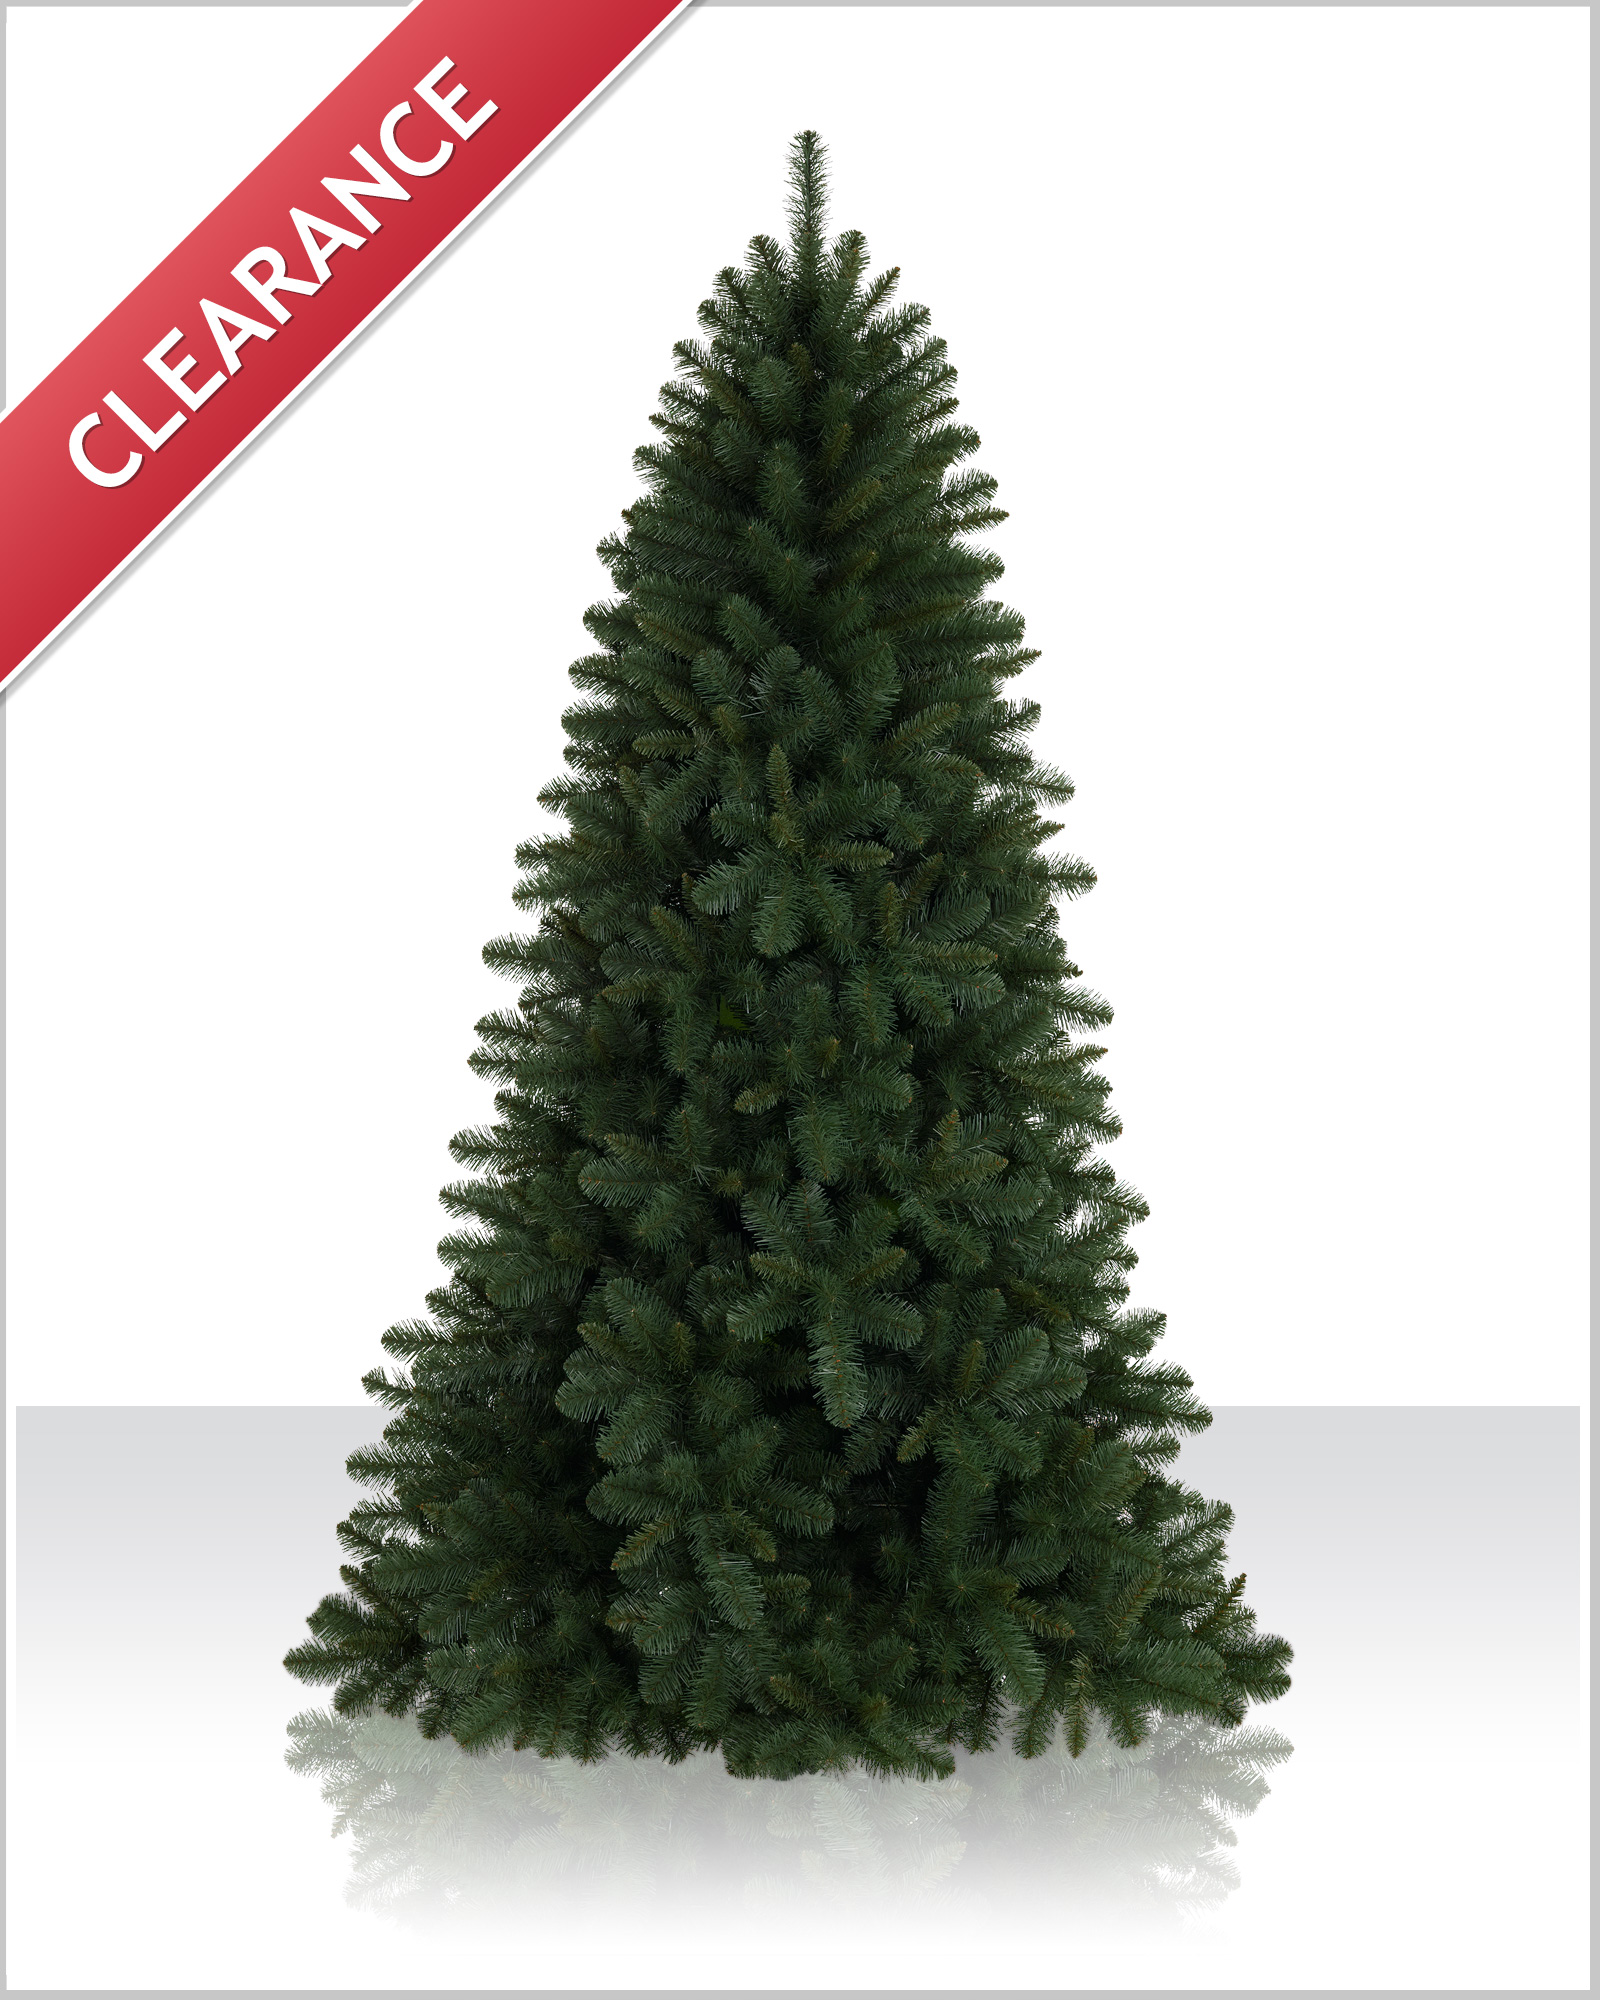 6 foot unlit fraser fir christmas tree - 2 Foot Christmas Tree